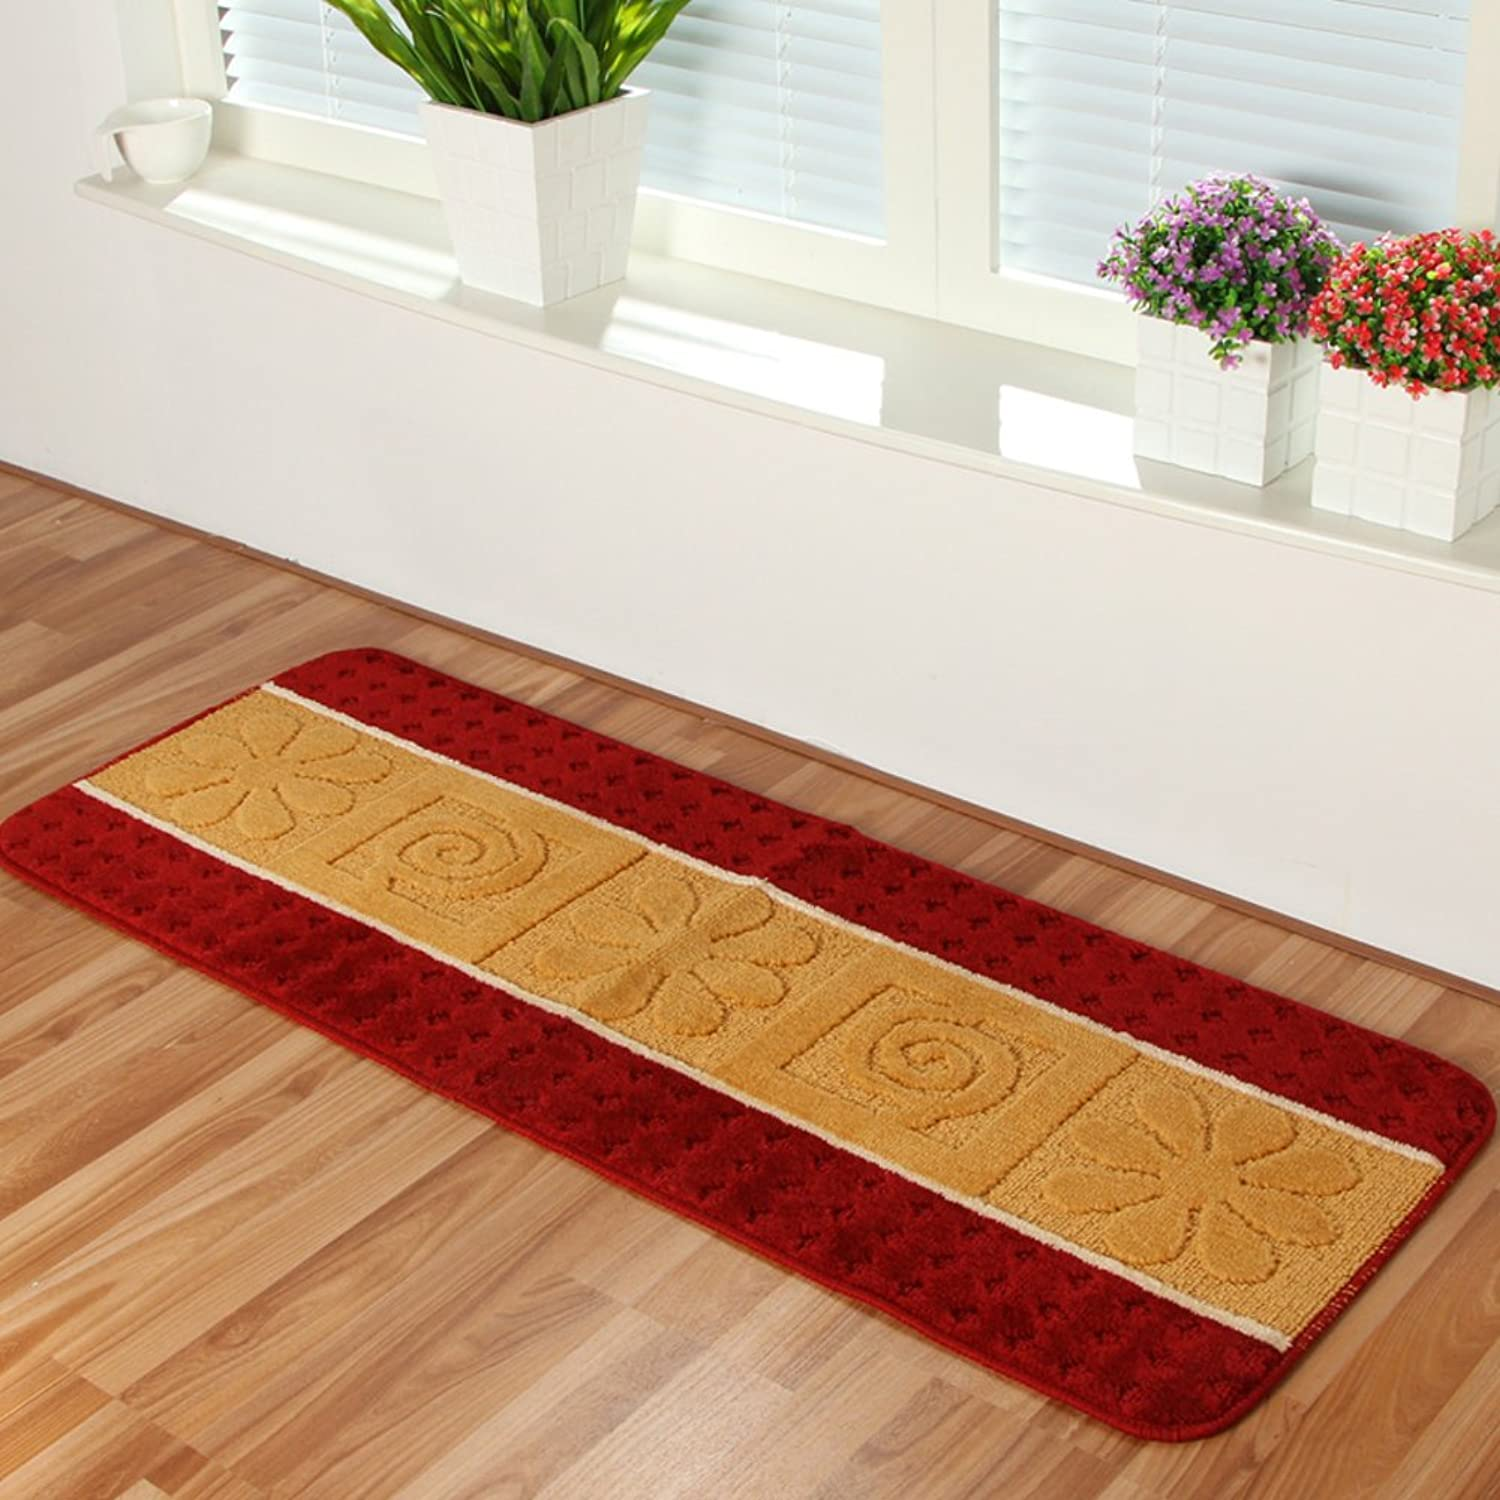 Long striped plush kitchen mat door mat Long kitchen mats The door Water-absorption anti-skid door mat Bed bay window cushion-D 45x180cm(18x71inch)